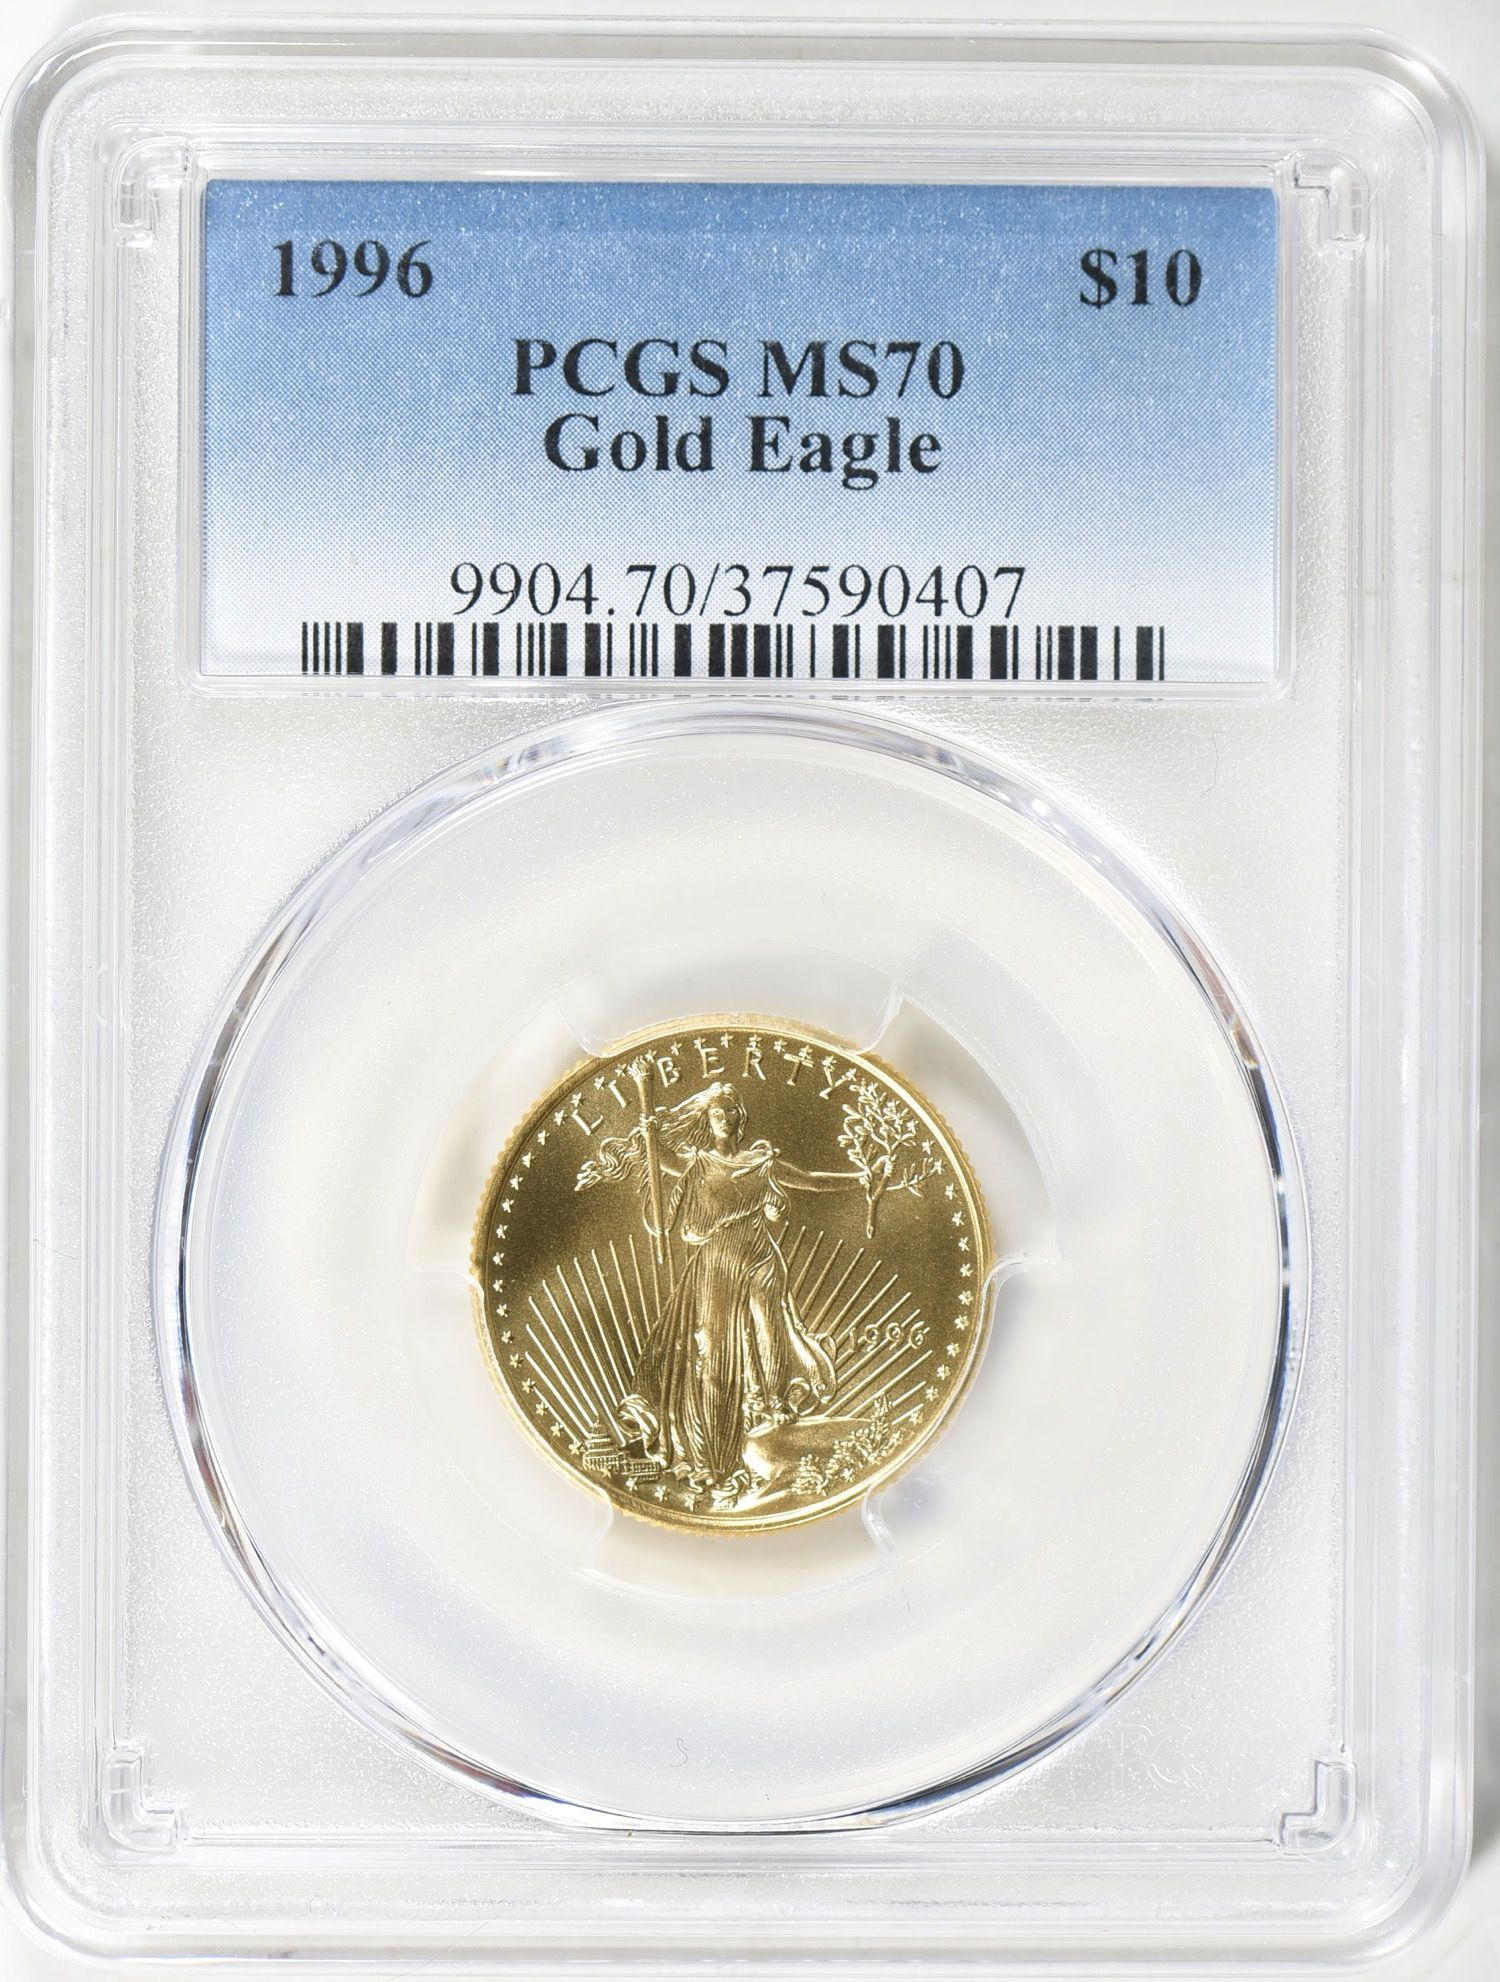 1996 10 Quarter Ounce Gold American Eagle Pcgs Ms 70 1996 10 Quarterounce The Post 1996 10 Quarter Ounce G In 2020 Gold American Eagle Gold Eagle Gold Coins